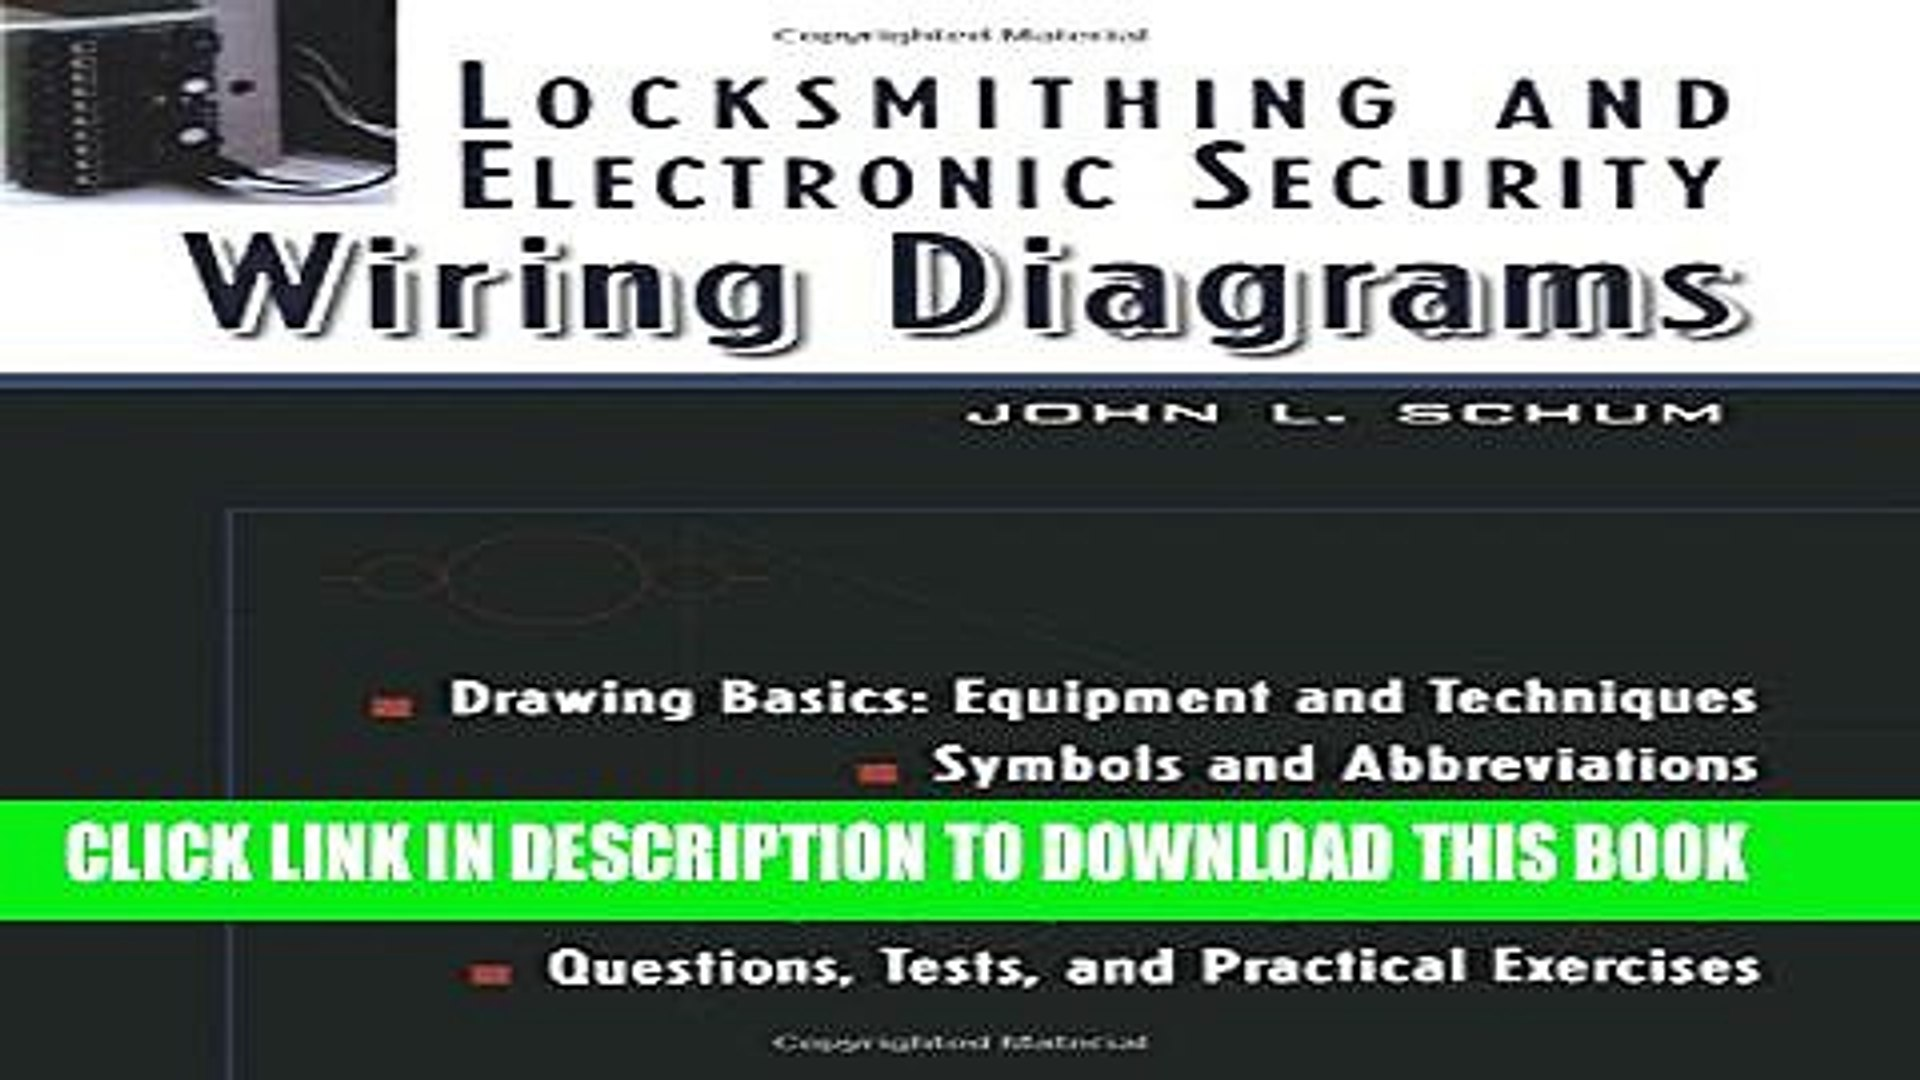 color wiring diagram 08 rhino fuel injected pdf  locksmithing and electronic security wiring diagrams popular  electronic security wiring diagrams